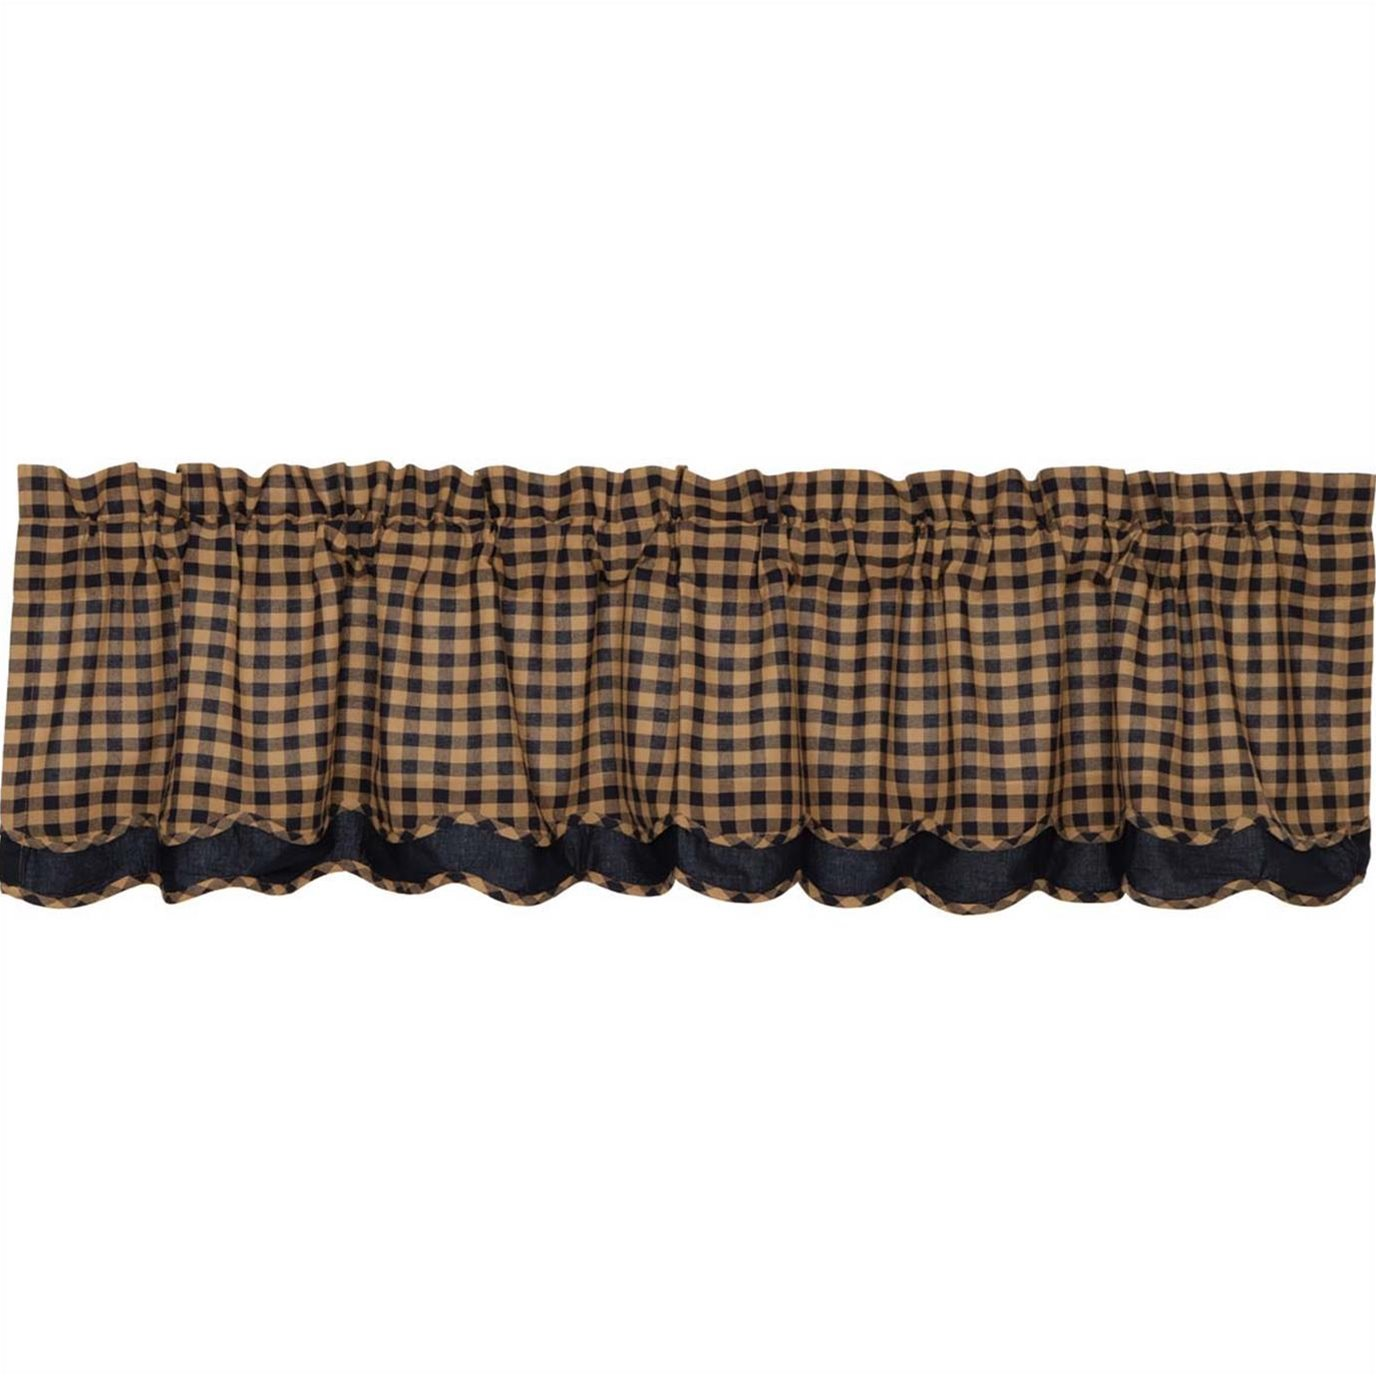 Navy Check Scalloped Layered Valance 16x72